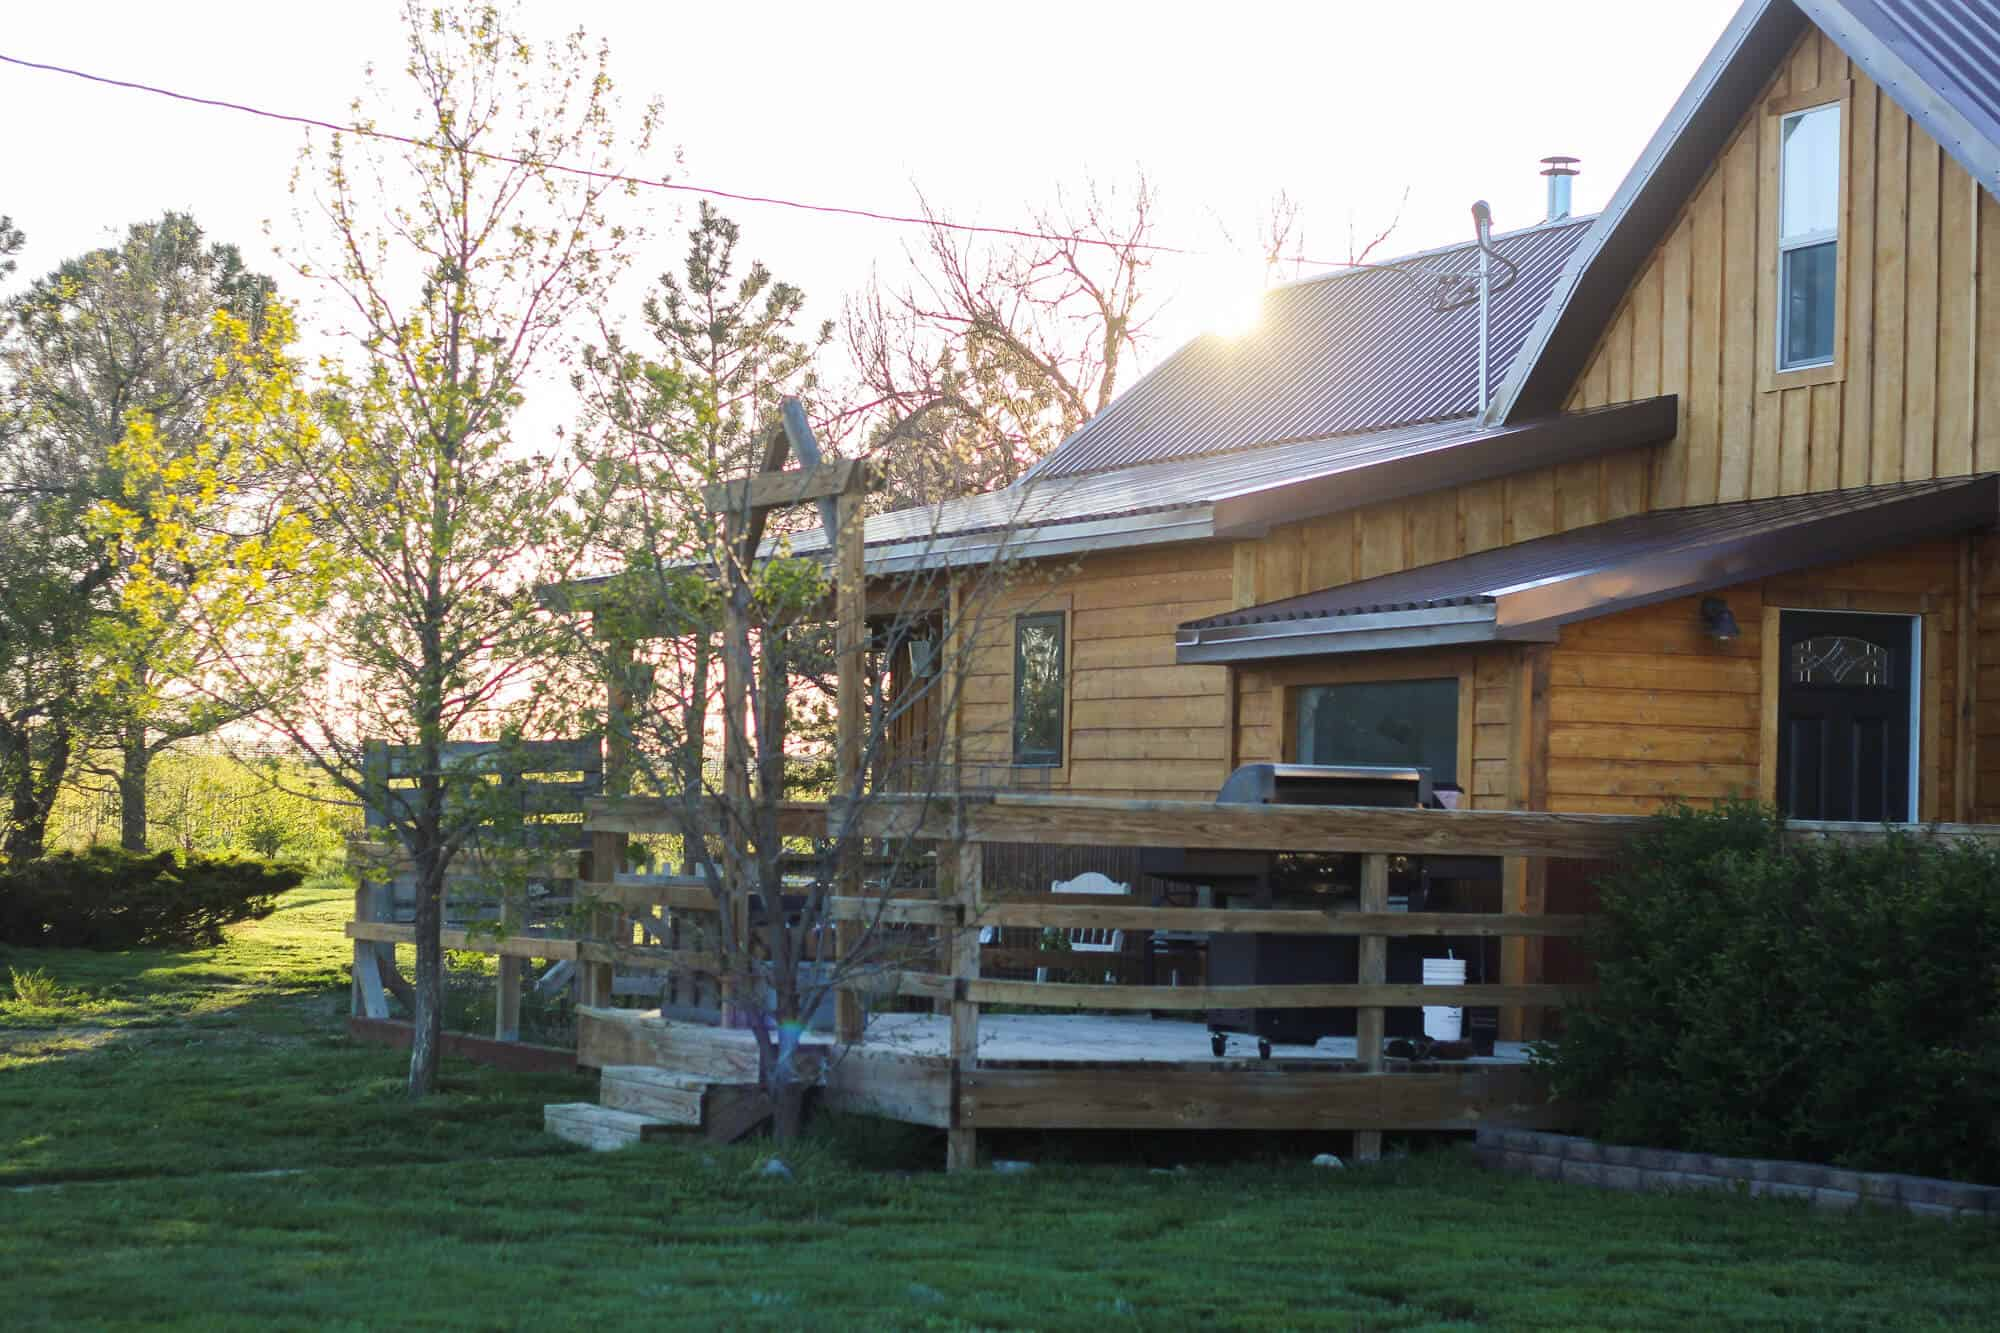 '''' from the web at 'http://www.theprairiehomestead.com/wp-content/uploads/2017/11/house-in-sun-1.jpg'